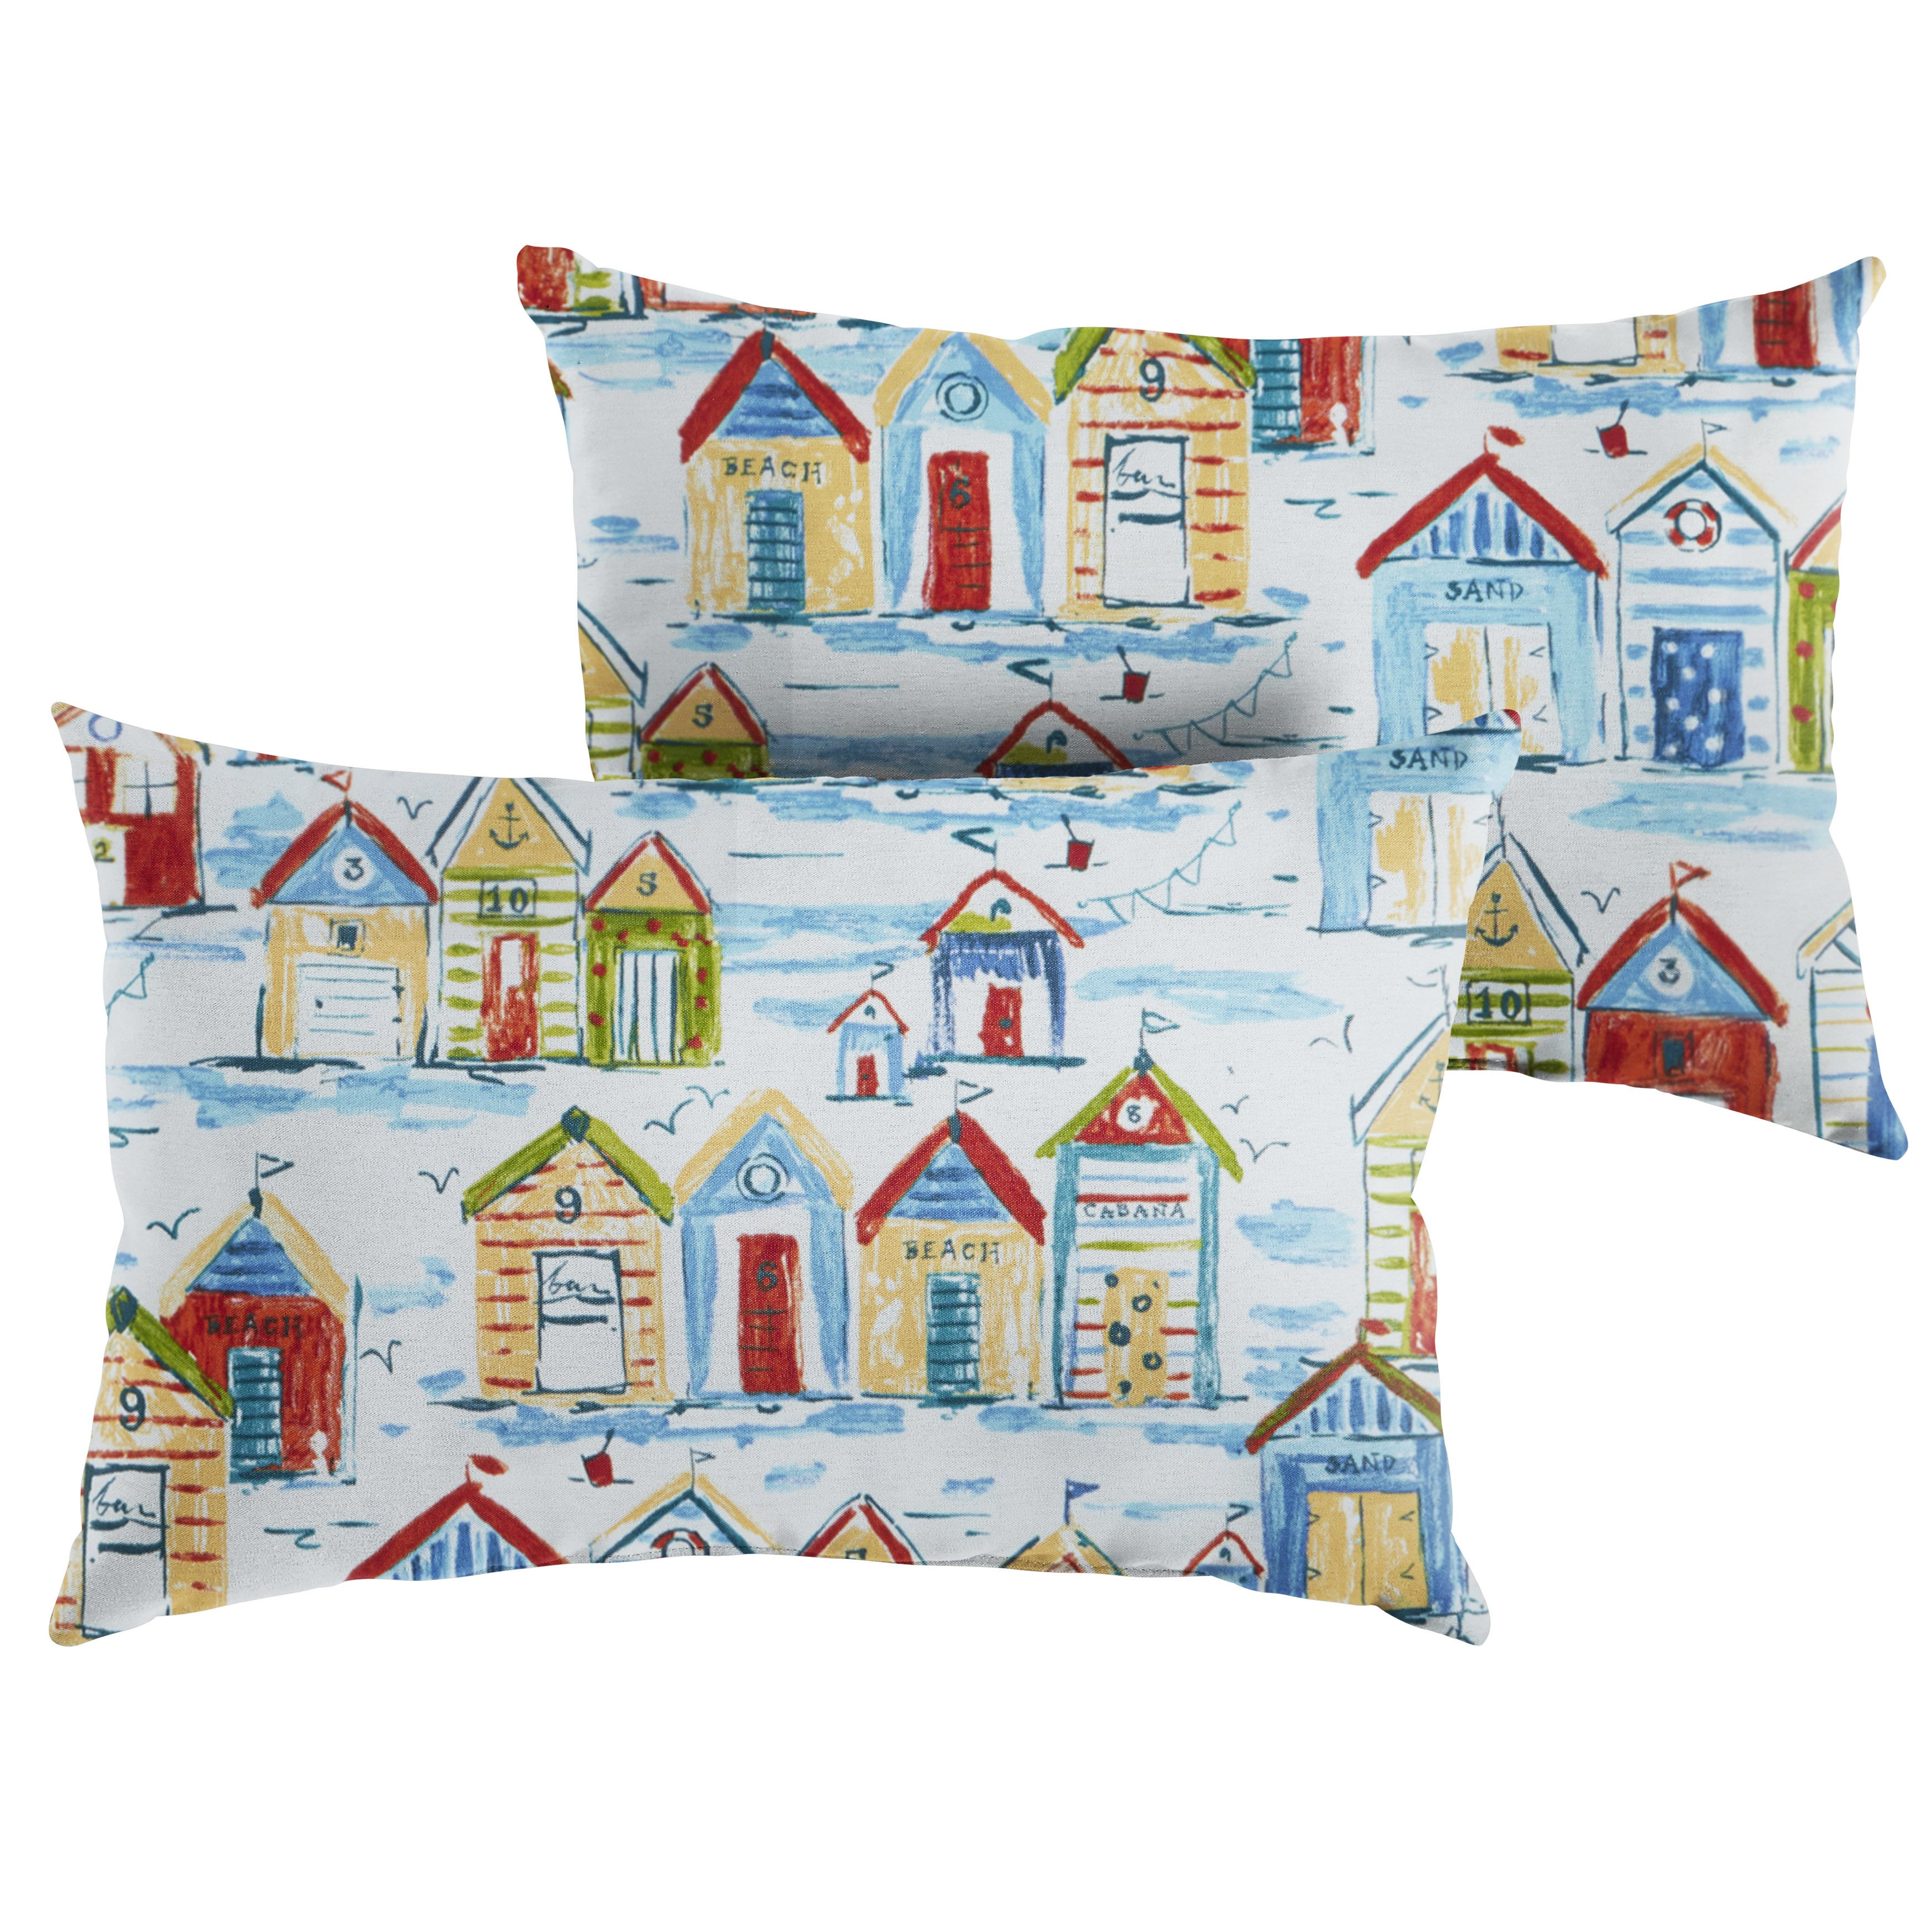 outdoor blanket oversized suzani pillows my pillow cost how do cushion much lumbar embroidered world market gallery